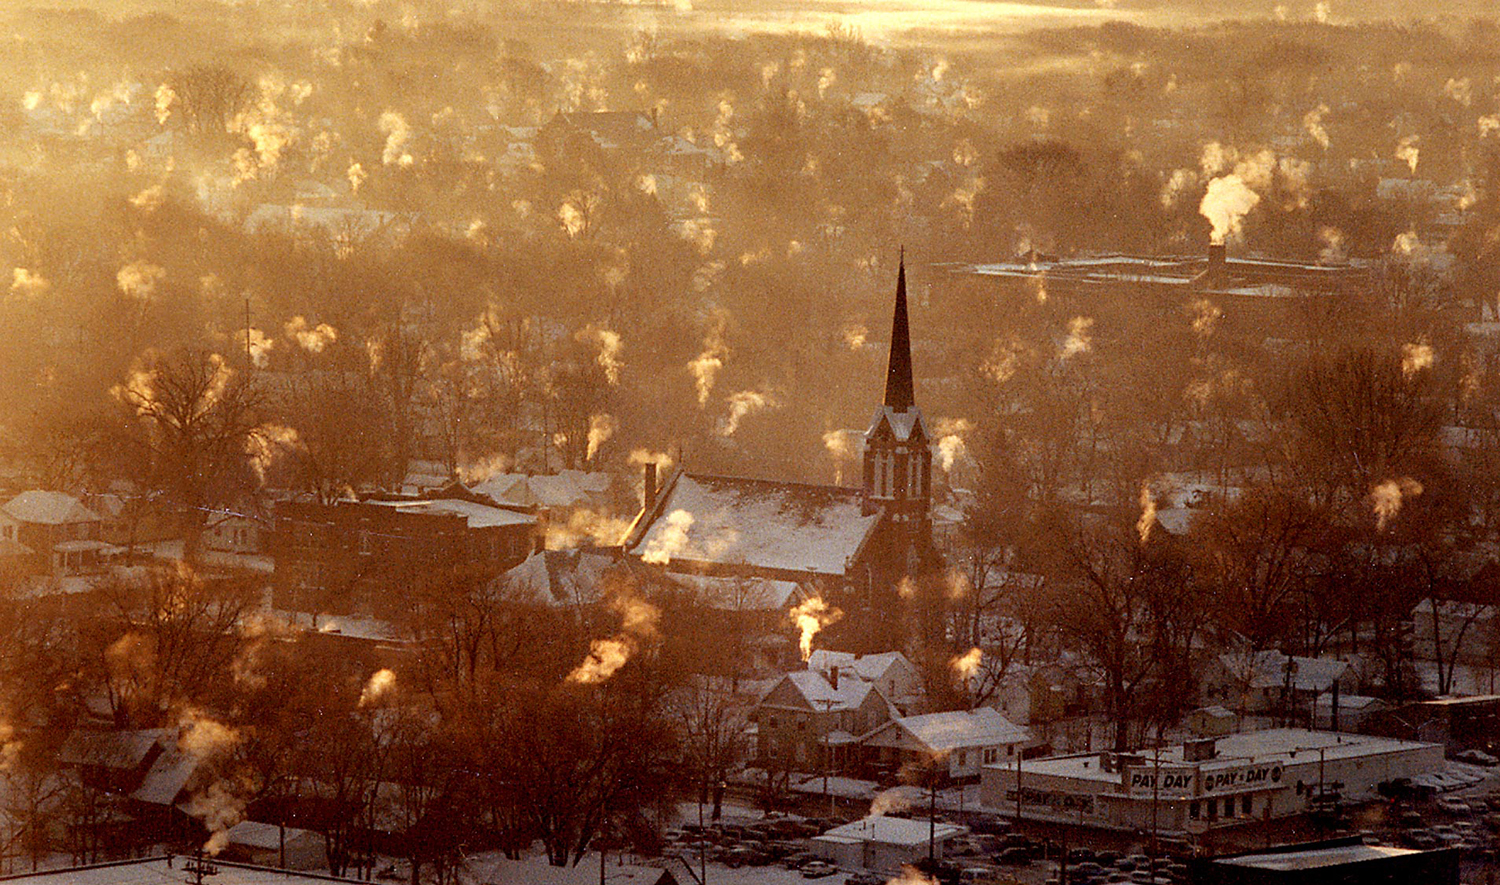 On the morning of Dec. 20, 1989, Hagen captured the scene from the 29th floor of the Hilton Springfield after a record-low overnight temperature of 14 below zero. [Bill Hagen/The State Journal-Register]